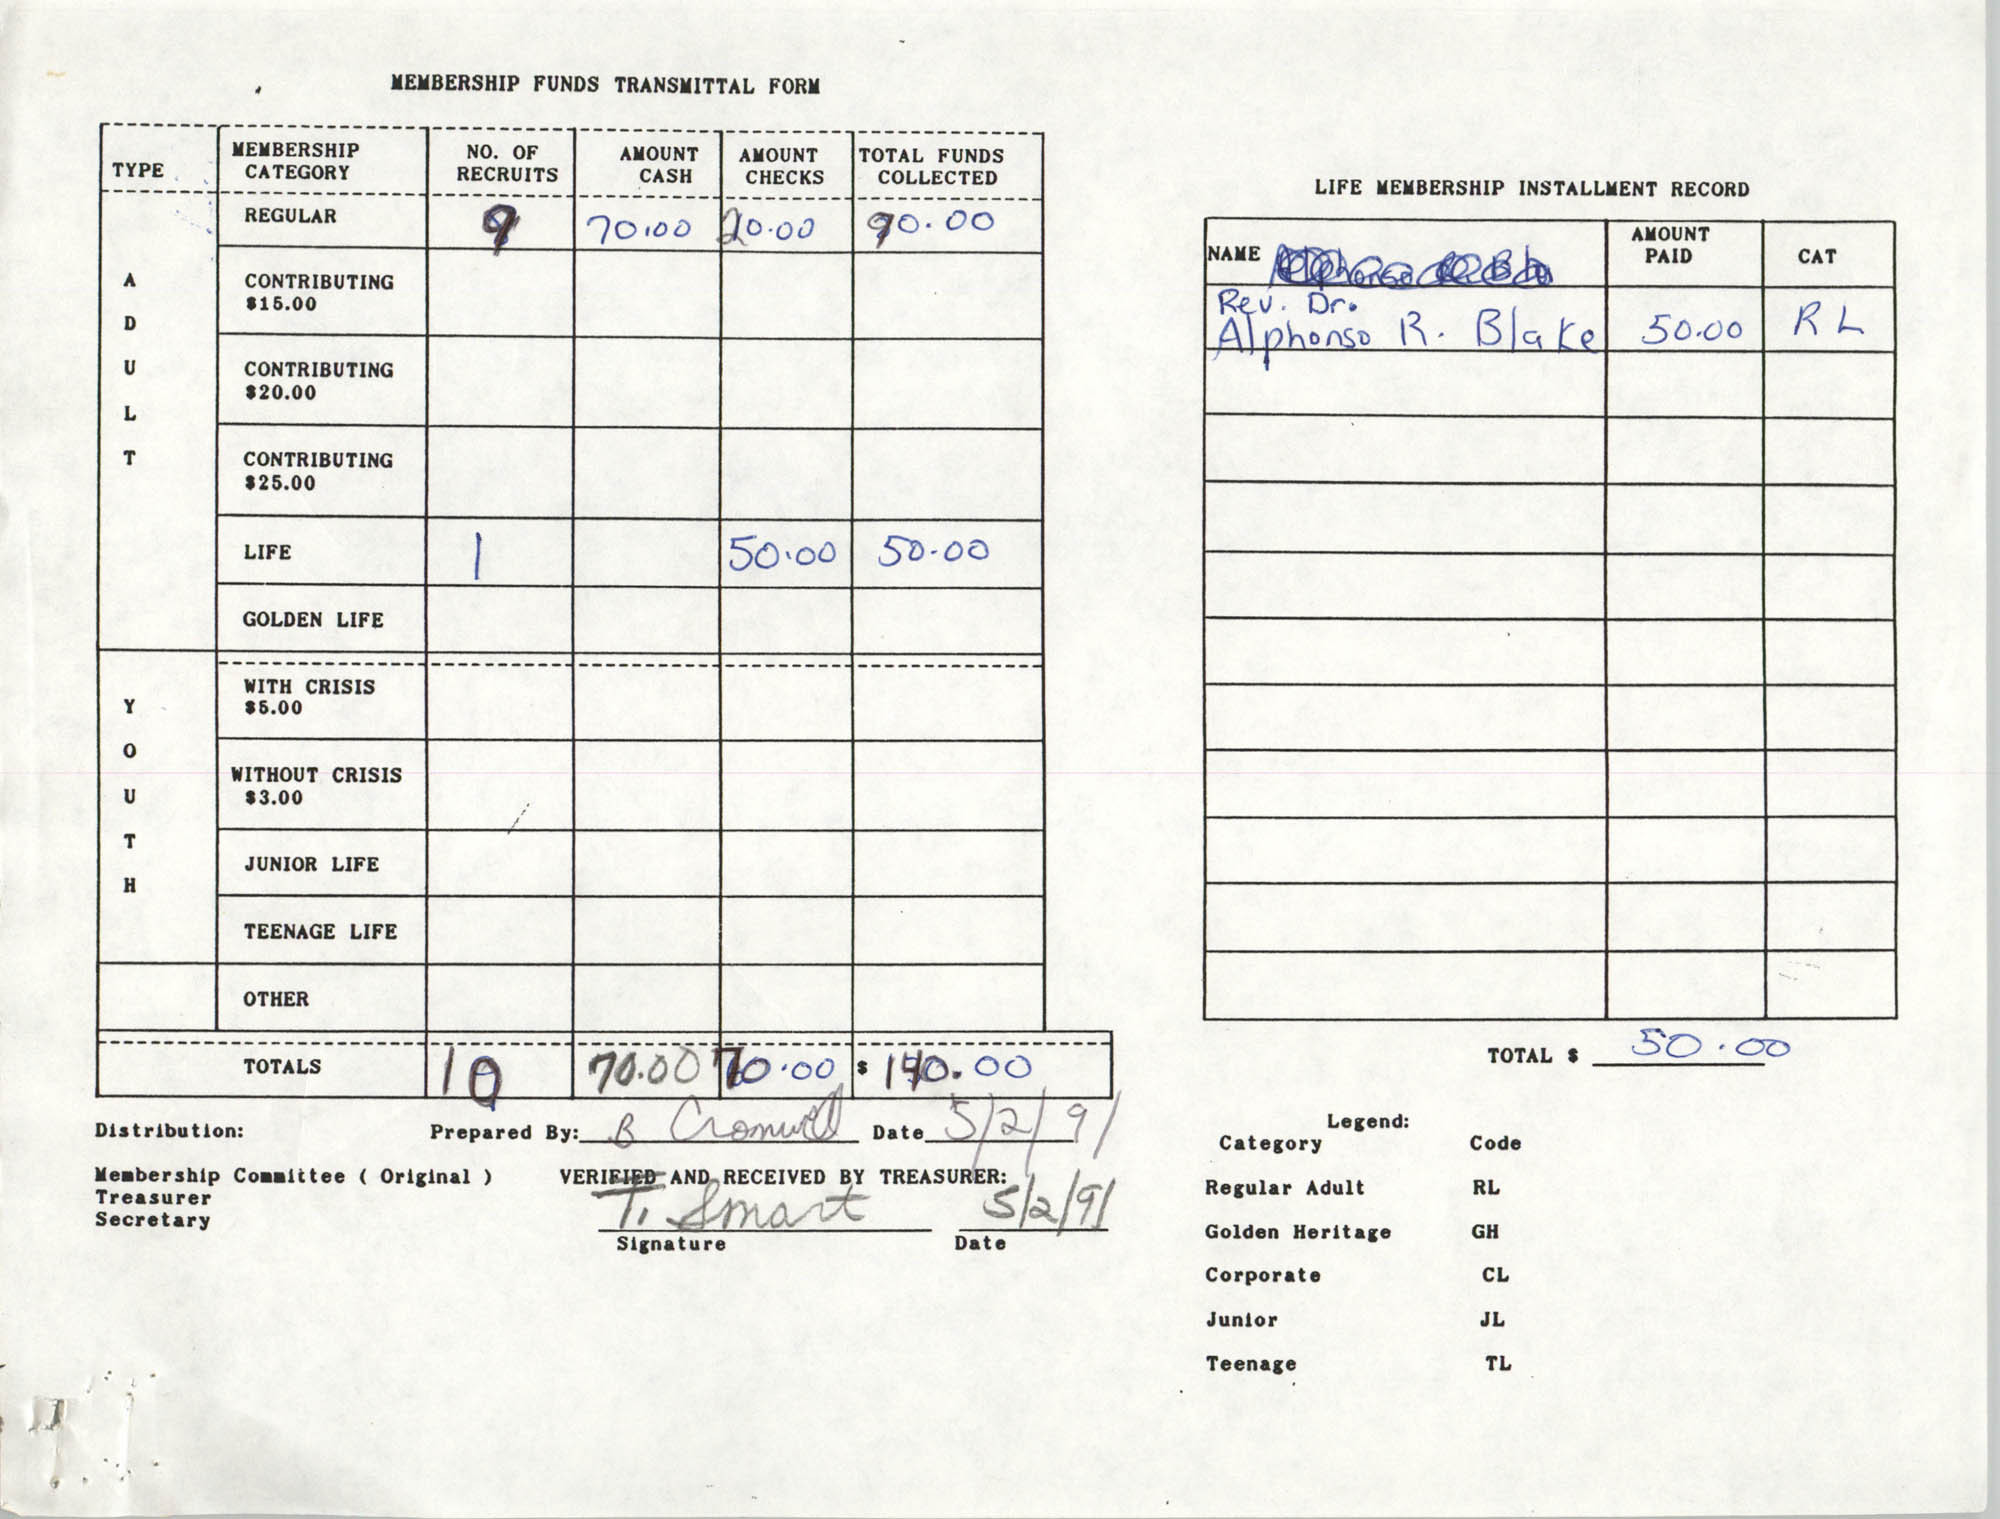 Charleston Branch of the NAACP Funds Transmittal Forms, May 1991, Page 1